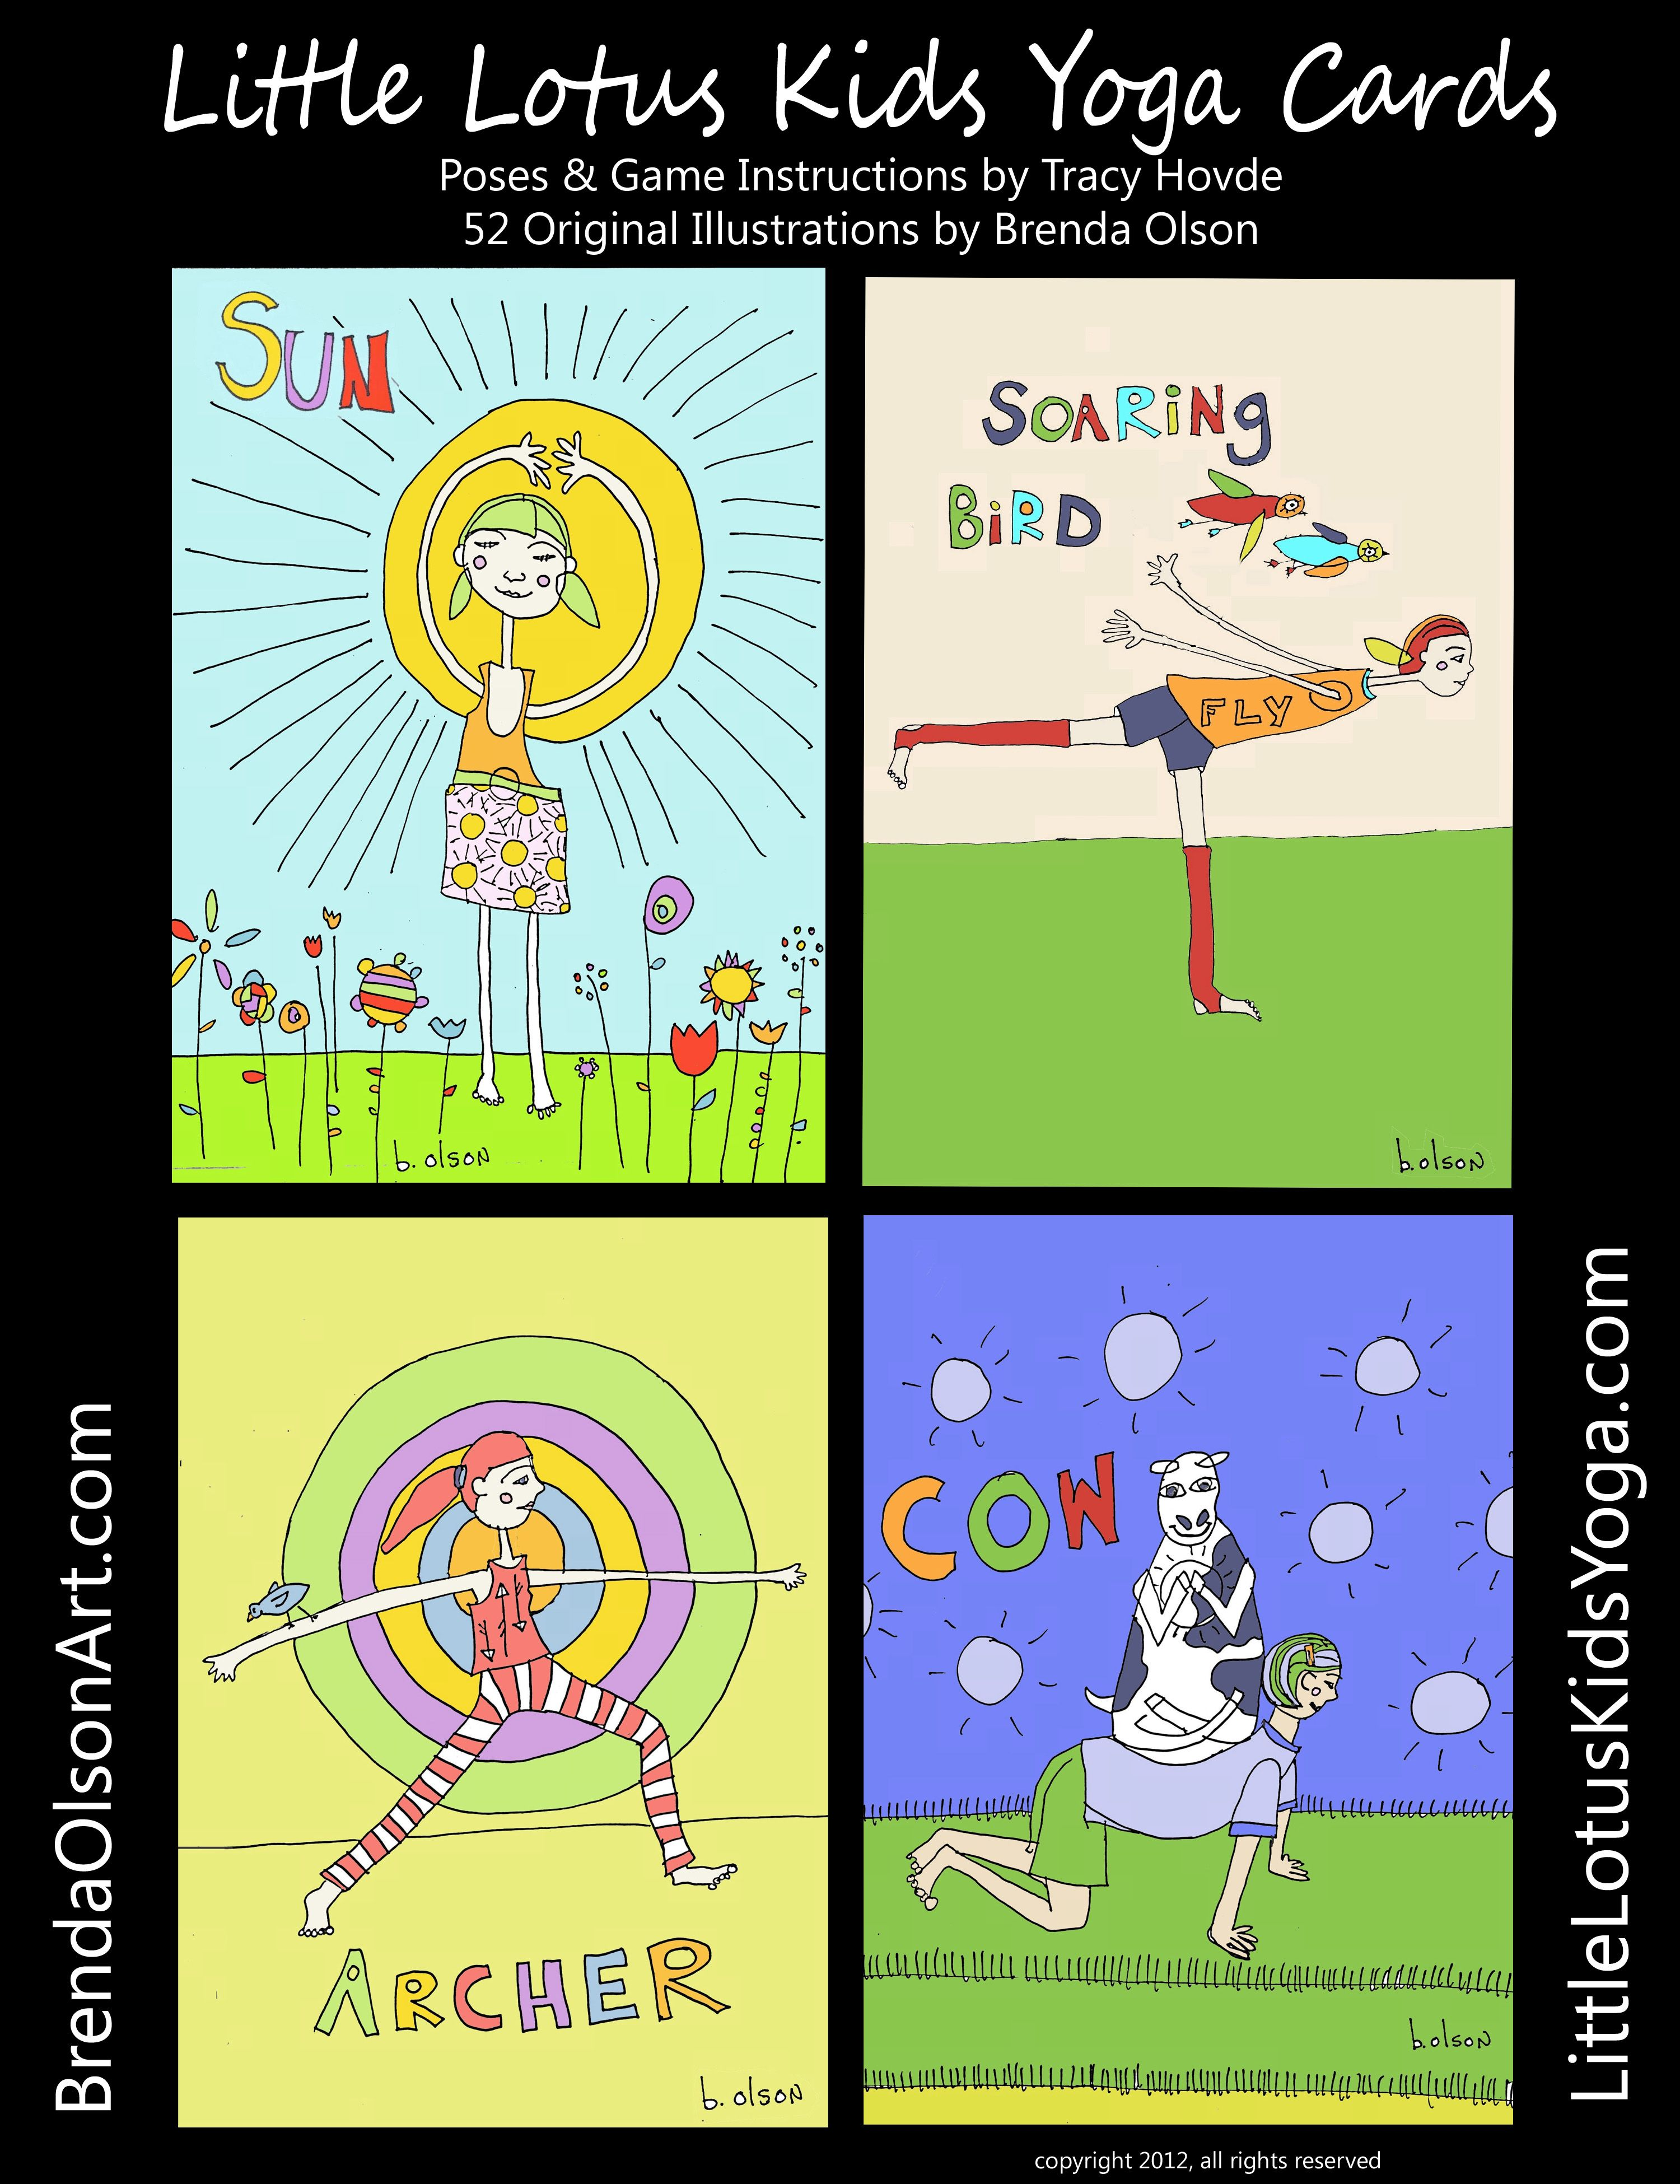 LIttle Lotus Kids Yoga Cards Include 39 Poses Fun Games For